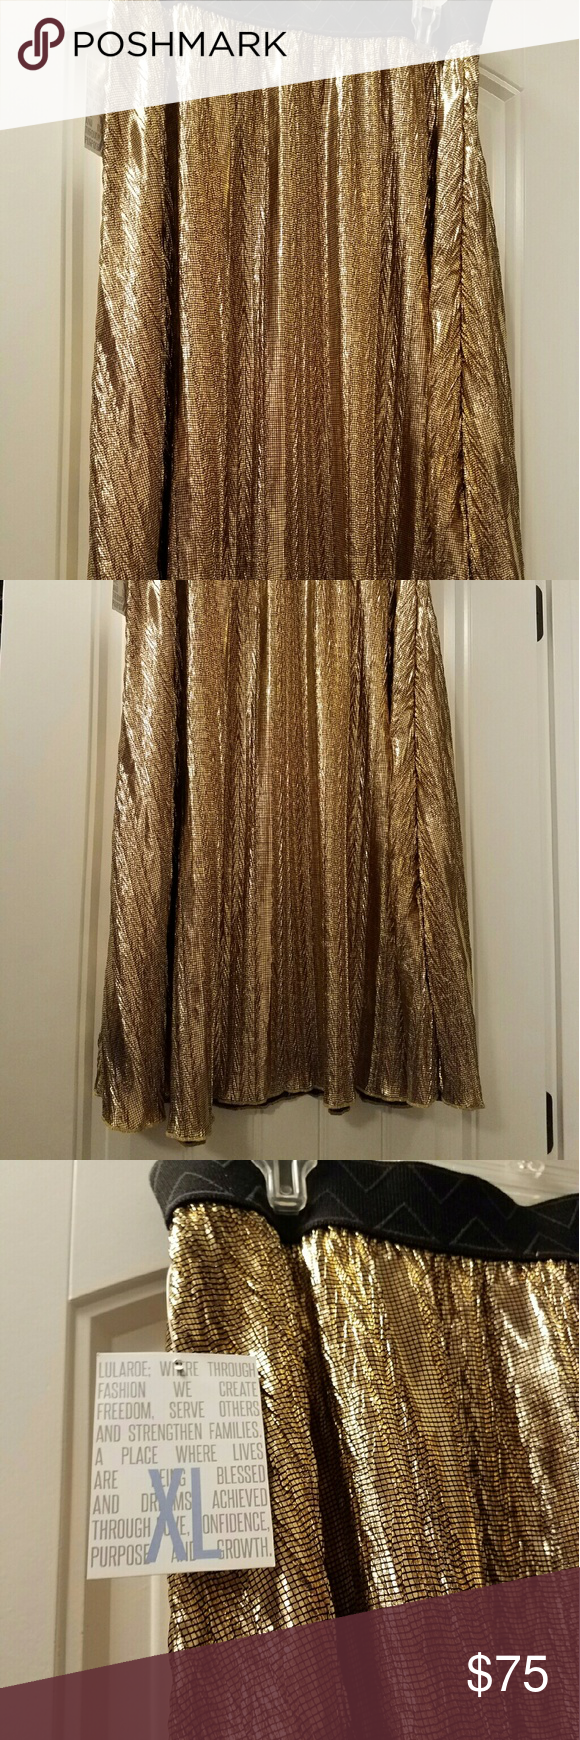 Lularoe Jill - Hard to Find, Elegance XL This is a beauty and this pattern is a gold foil-like material, very hard to find. Never been worn. XL in Lularoe Jill which is equivalent to size 16-18.  Cross-posted LuLaRoe Skirts